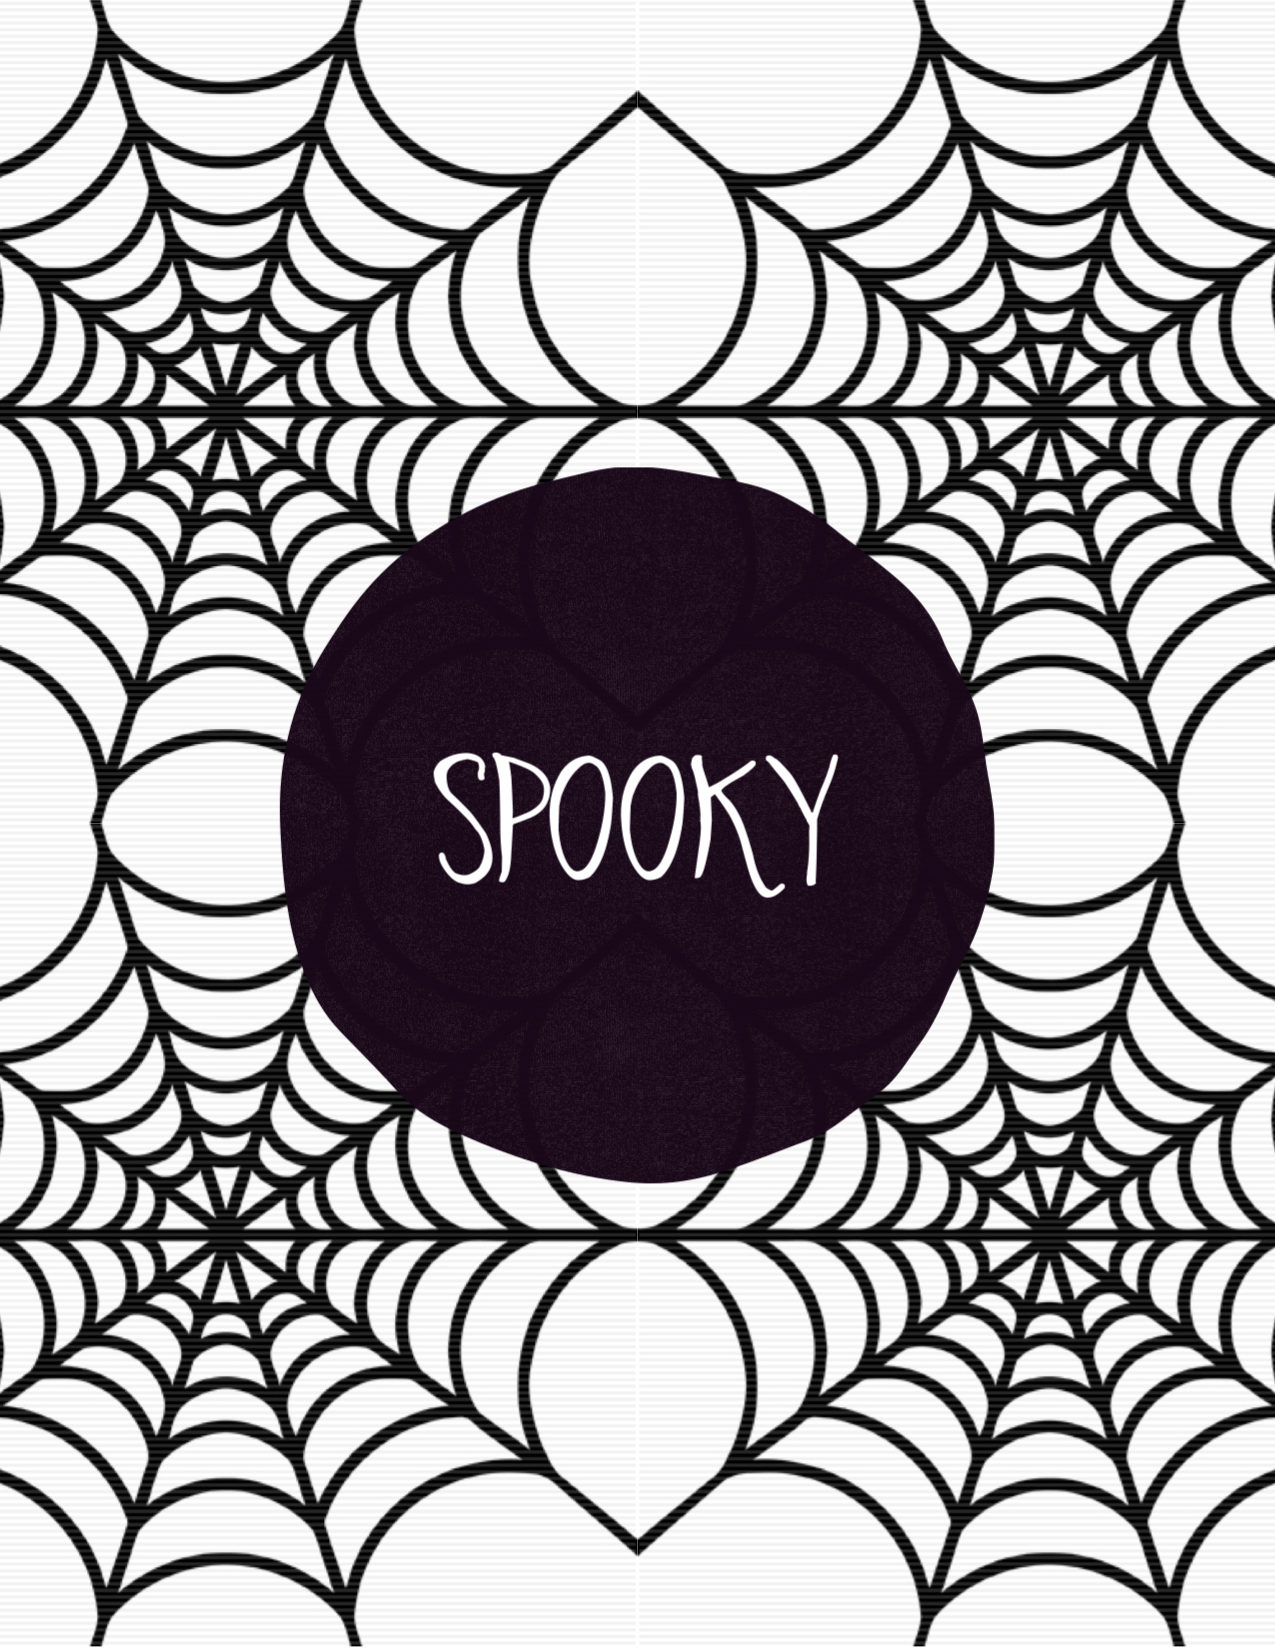 picture regarding Spider Web Printable called Spooky Halloween Spider World-wide-web Free of charge Printable - Paper Path Layout